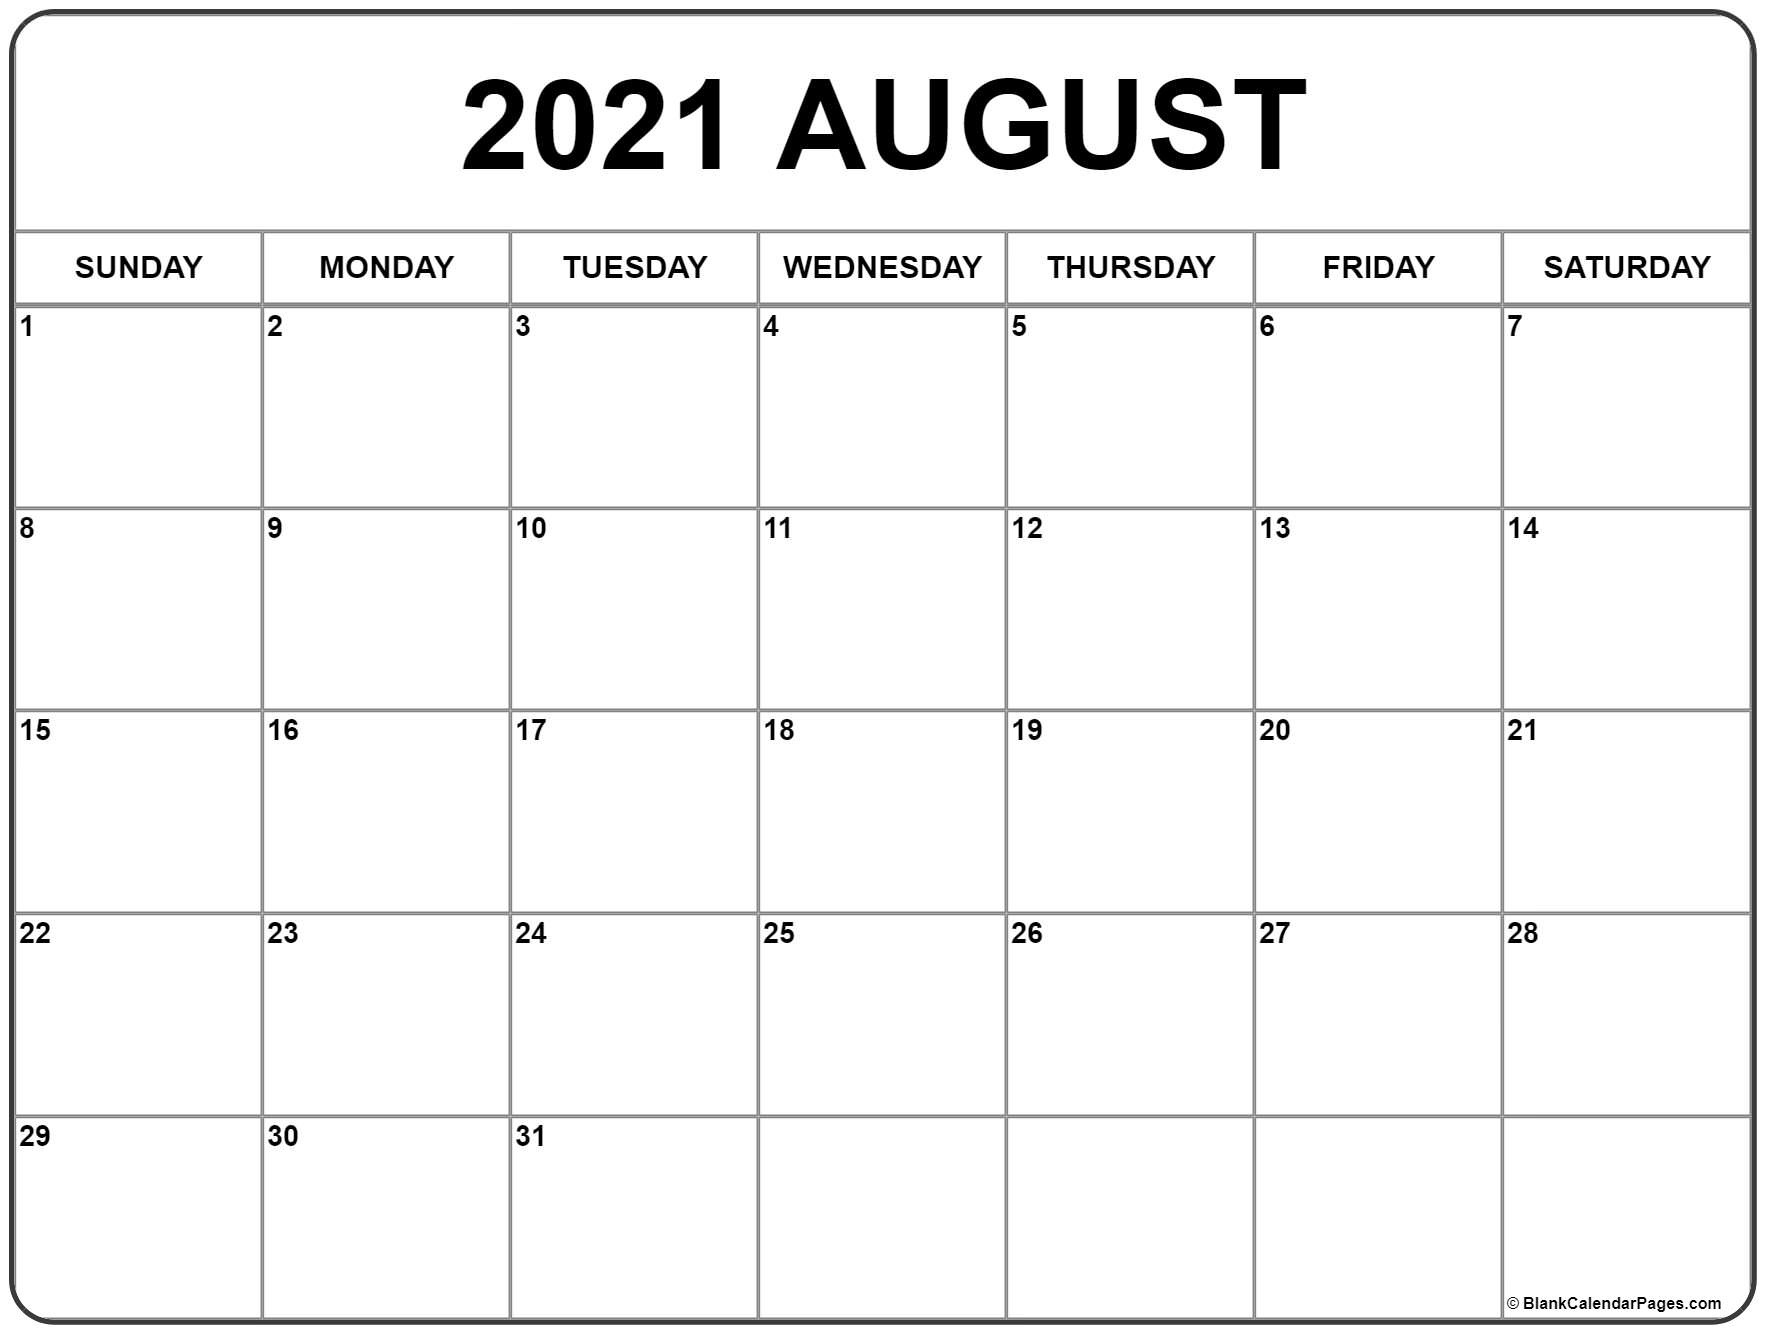 Catch 2021 Printable Calendar August September October